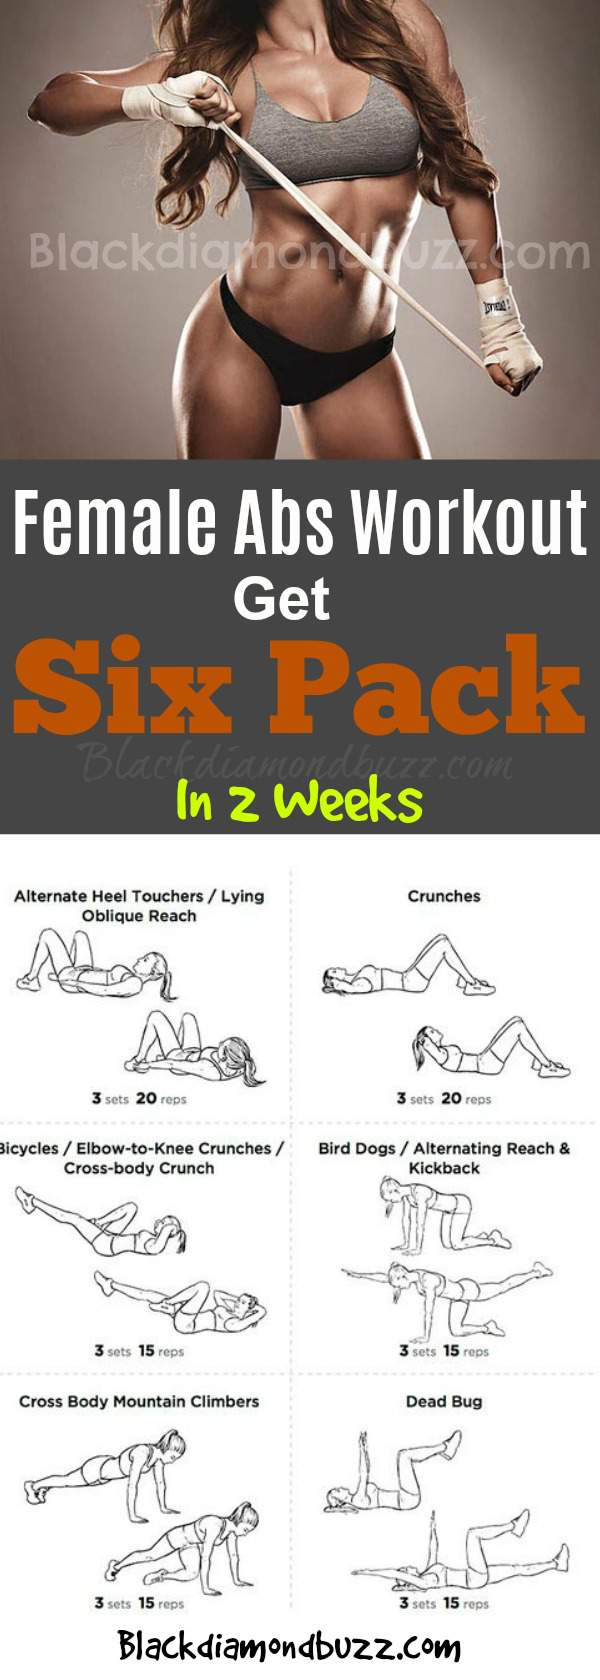 How to get six pack in 1 week